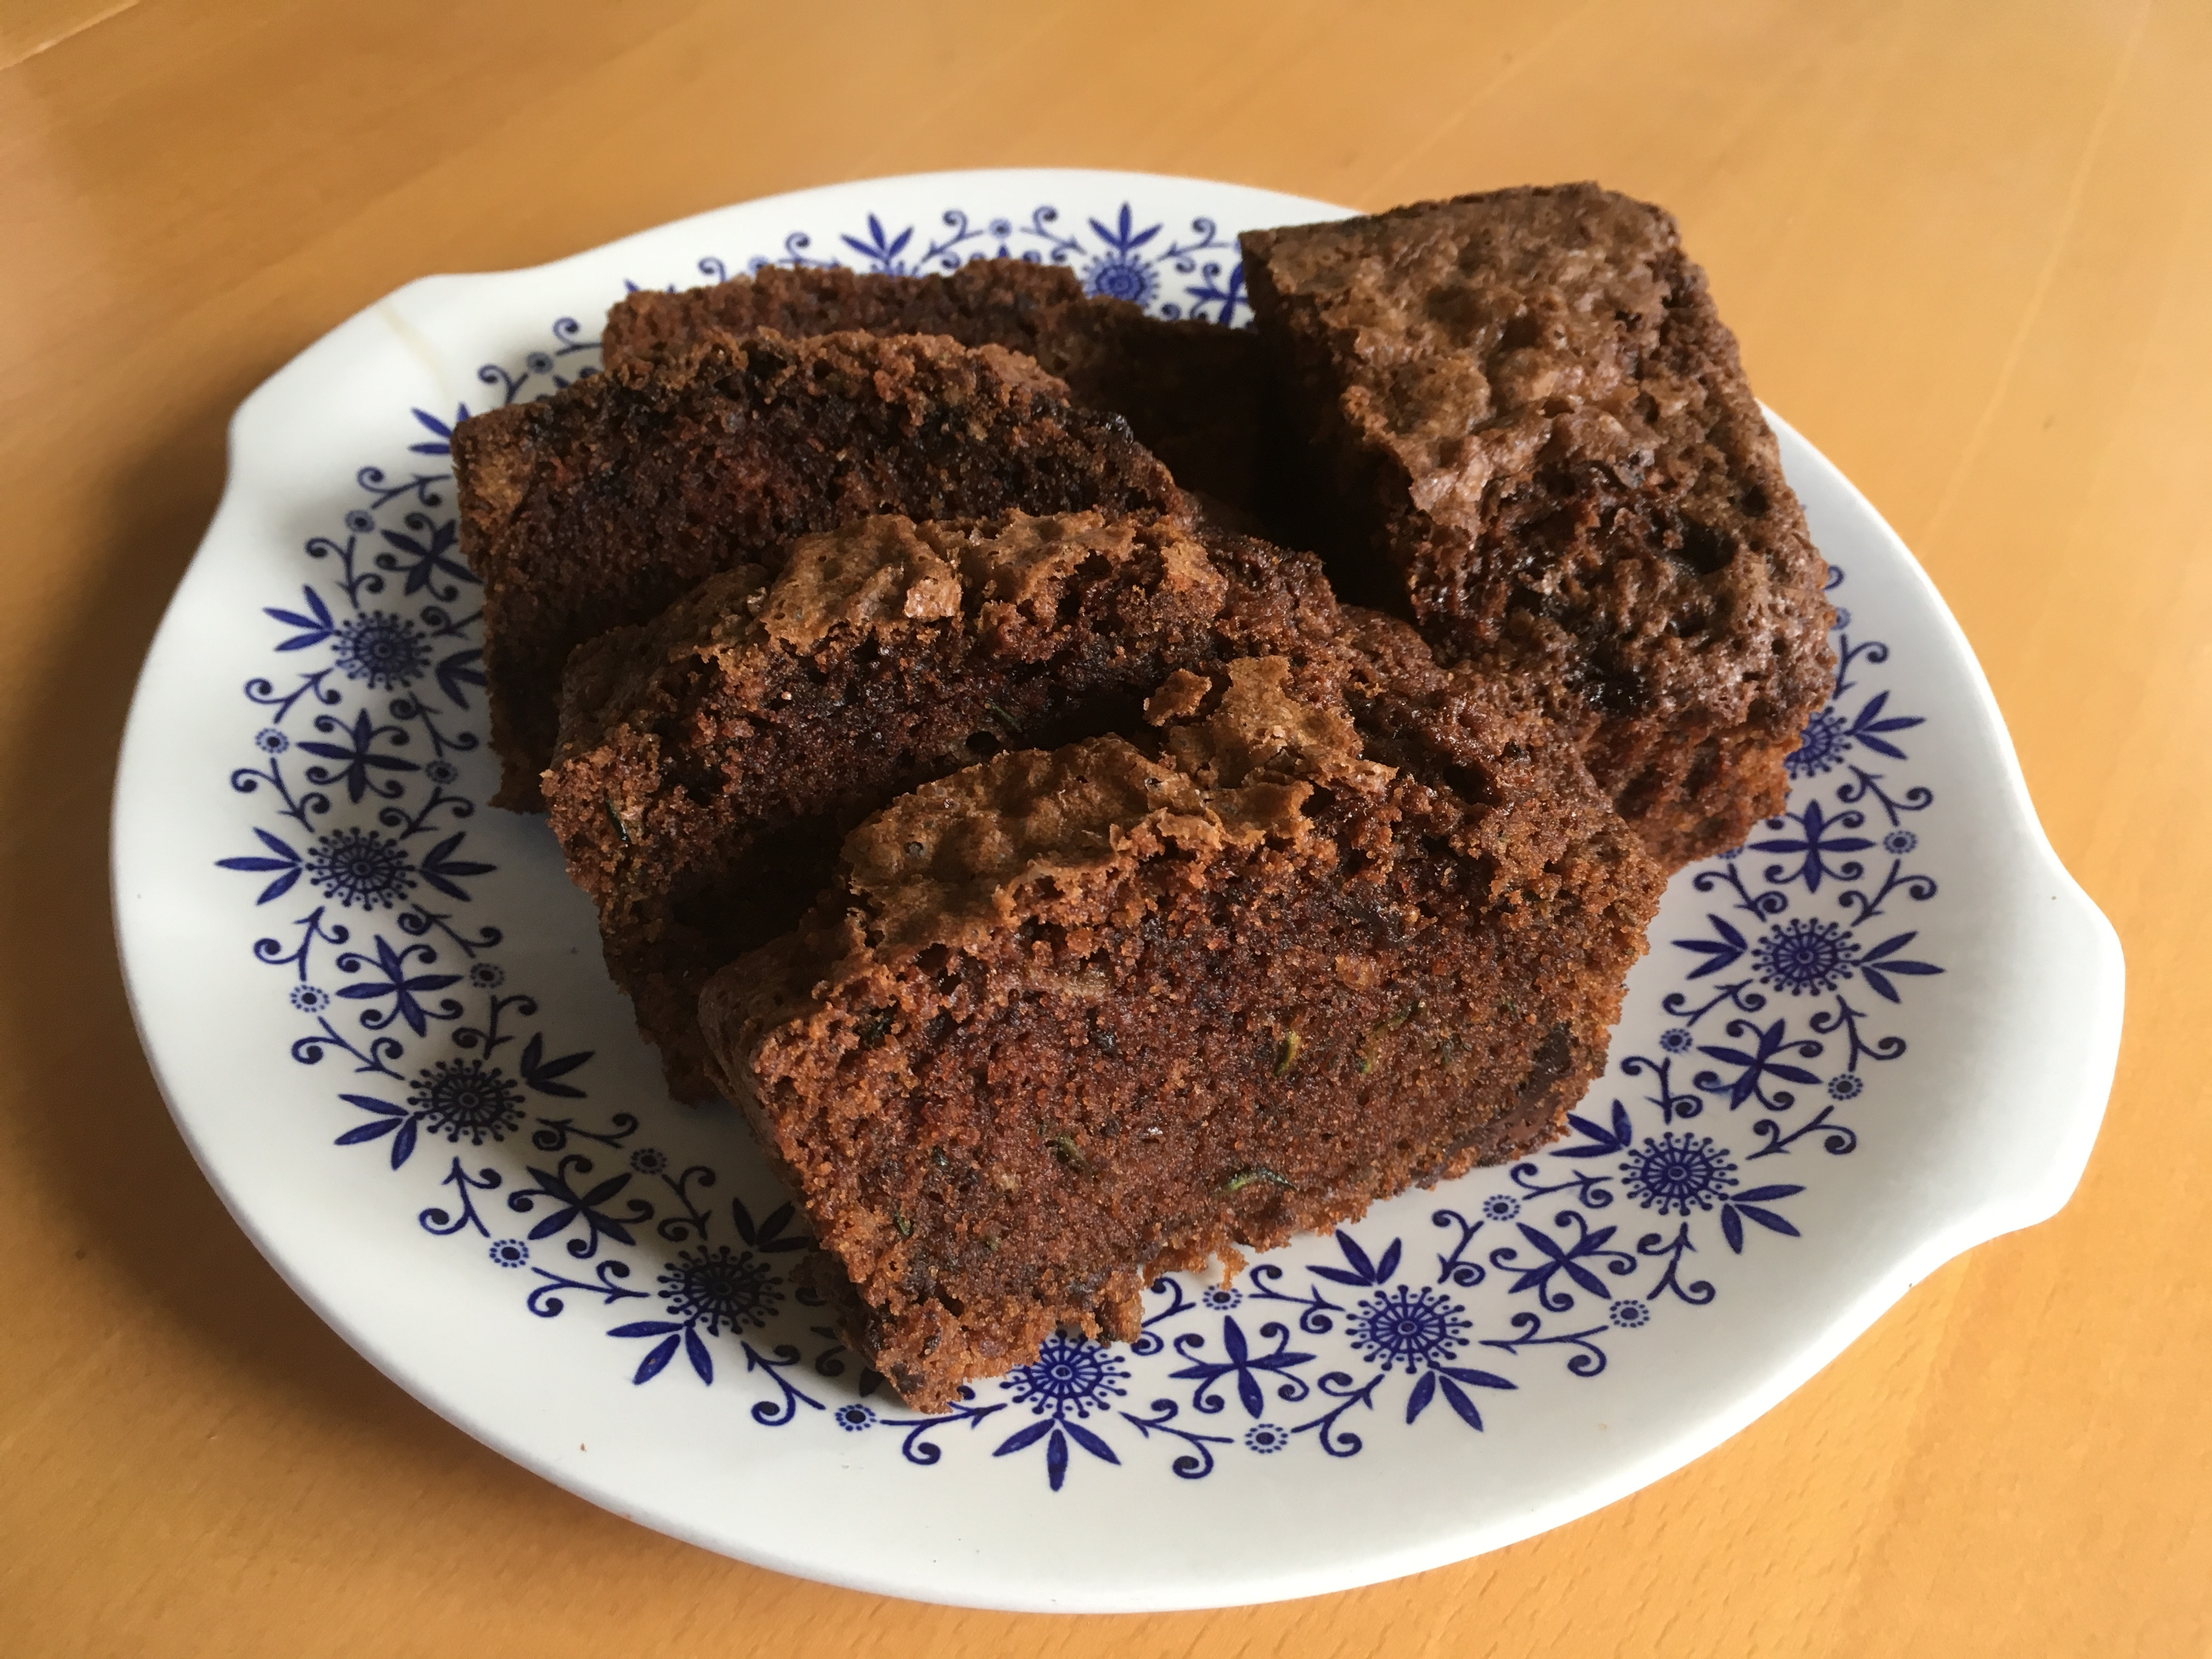 Chocolate courgette loaf cake